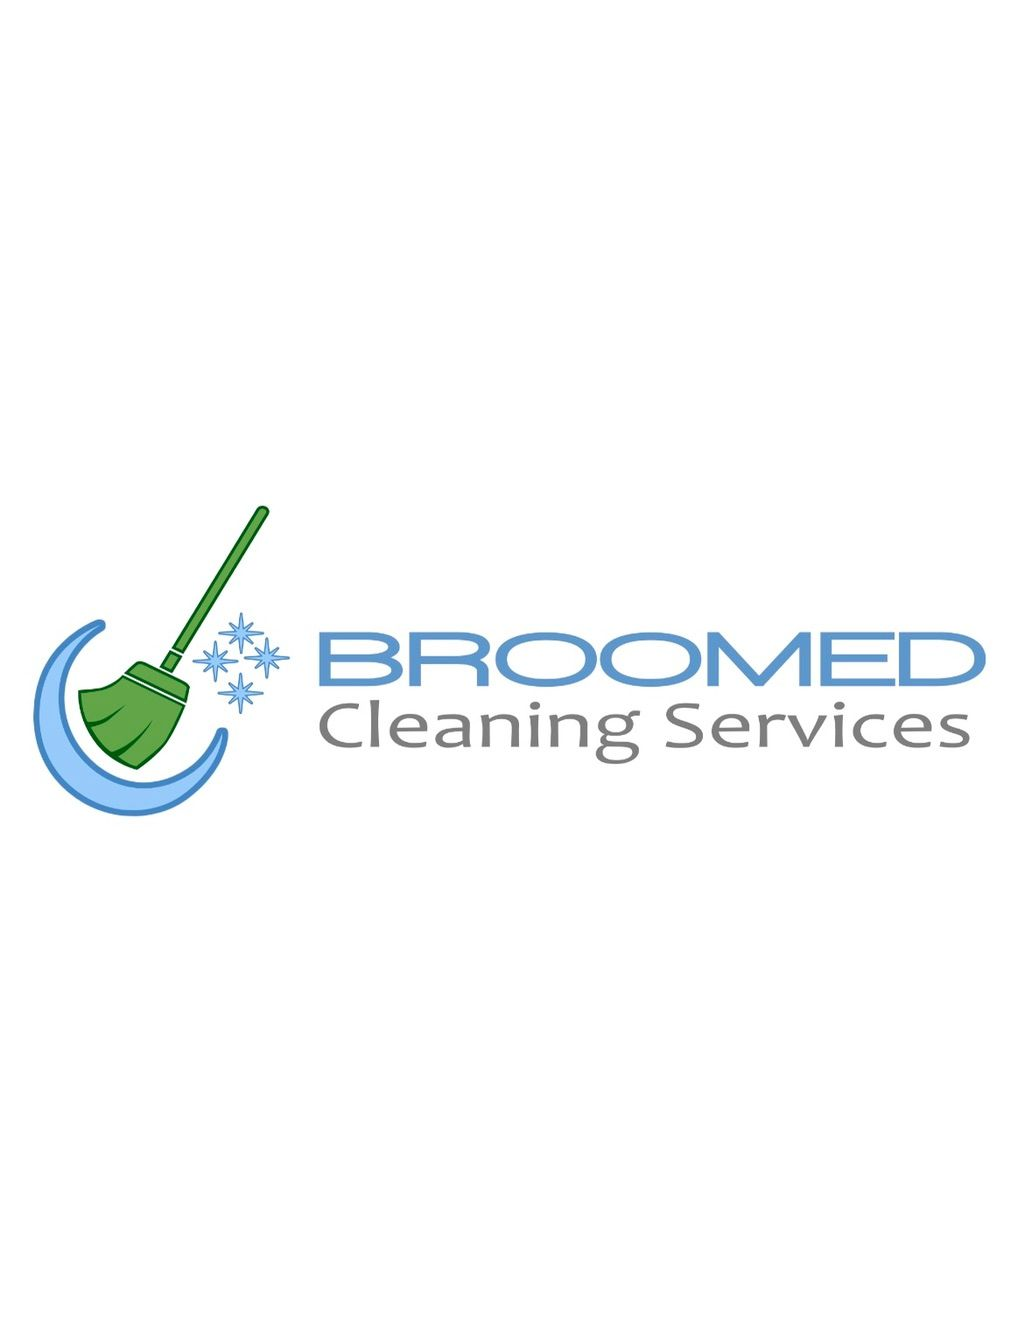 Broomed Cleaning Services